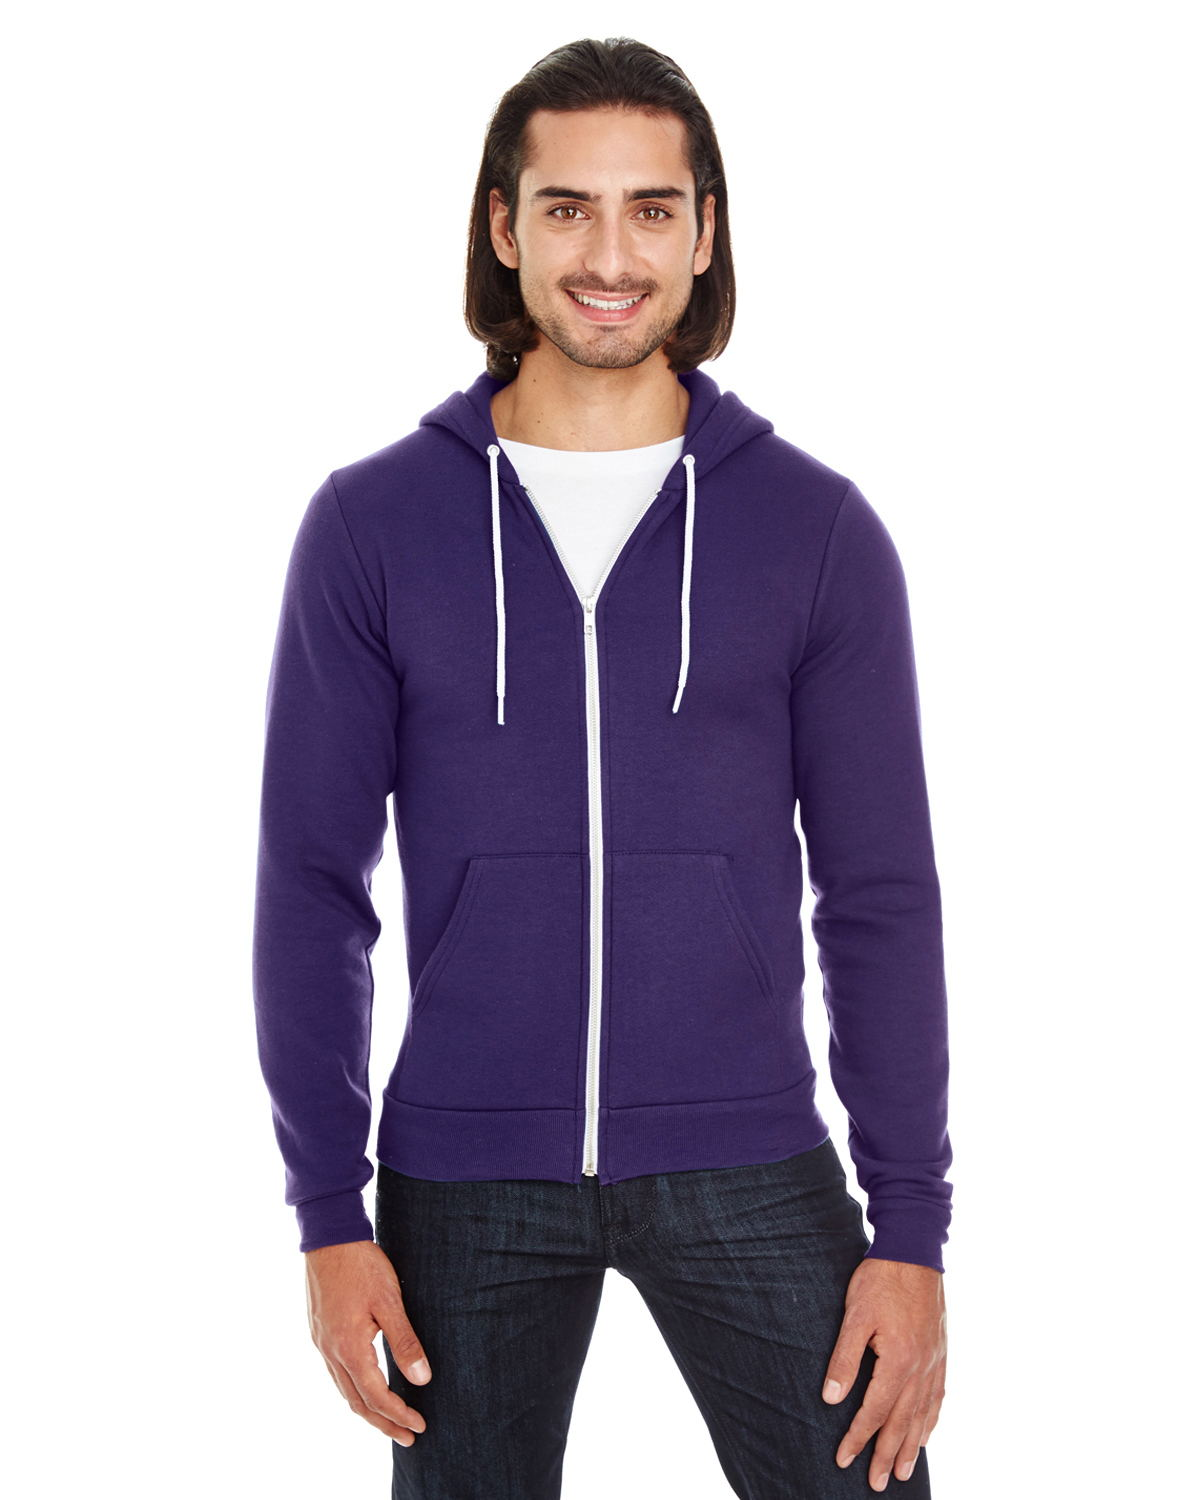 click to view Imperial Purple